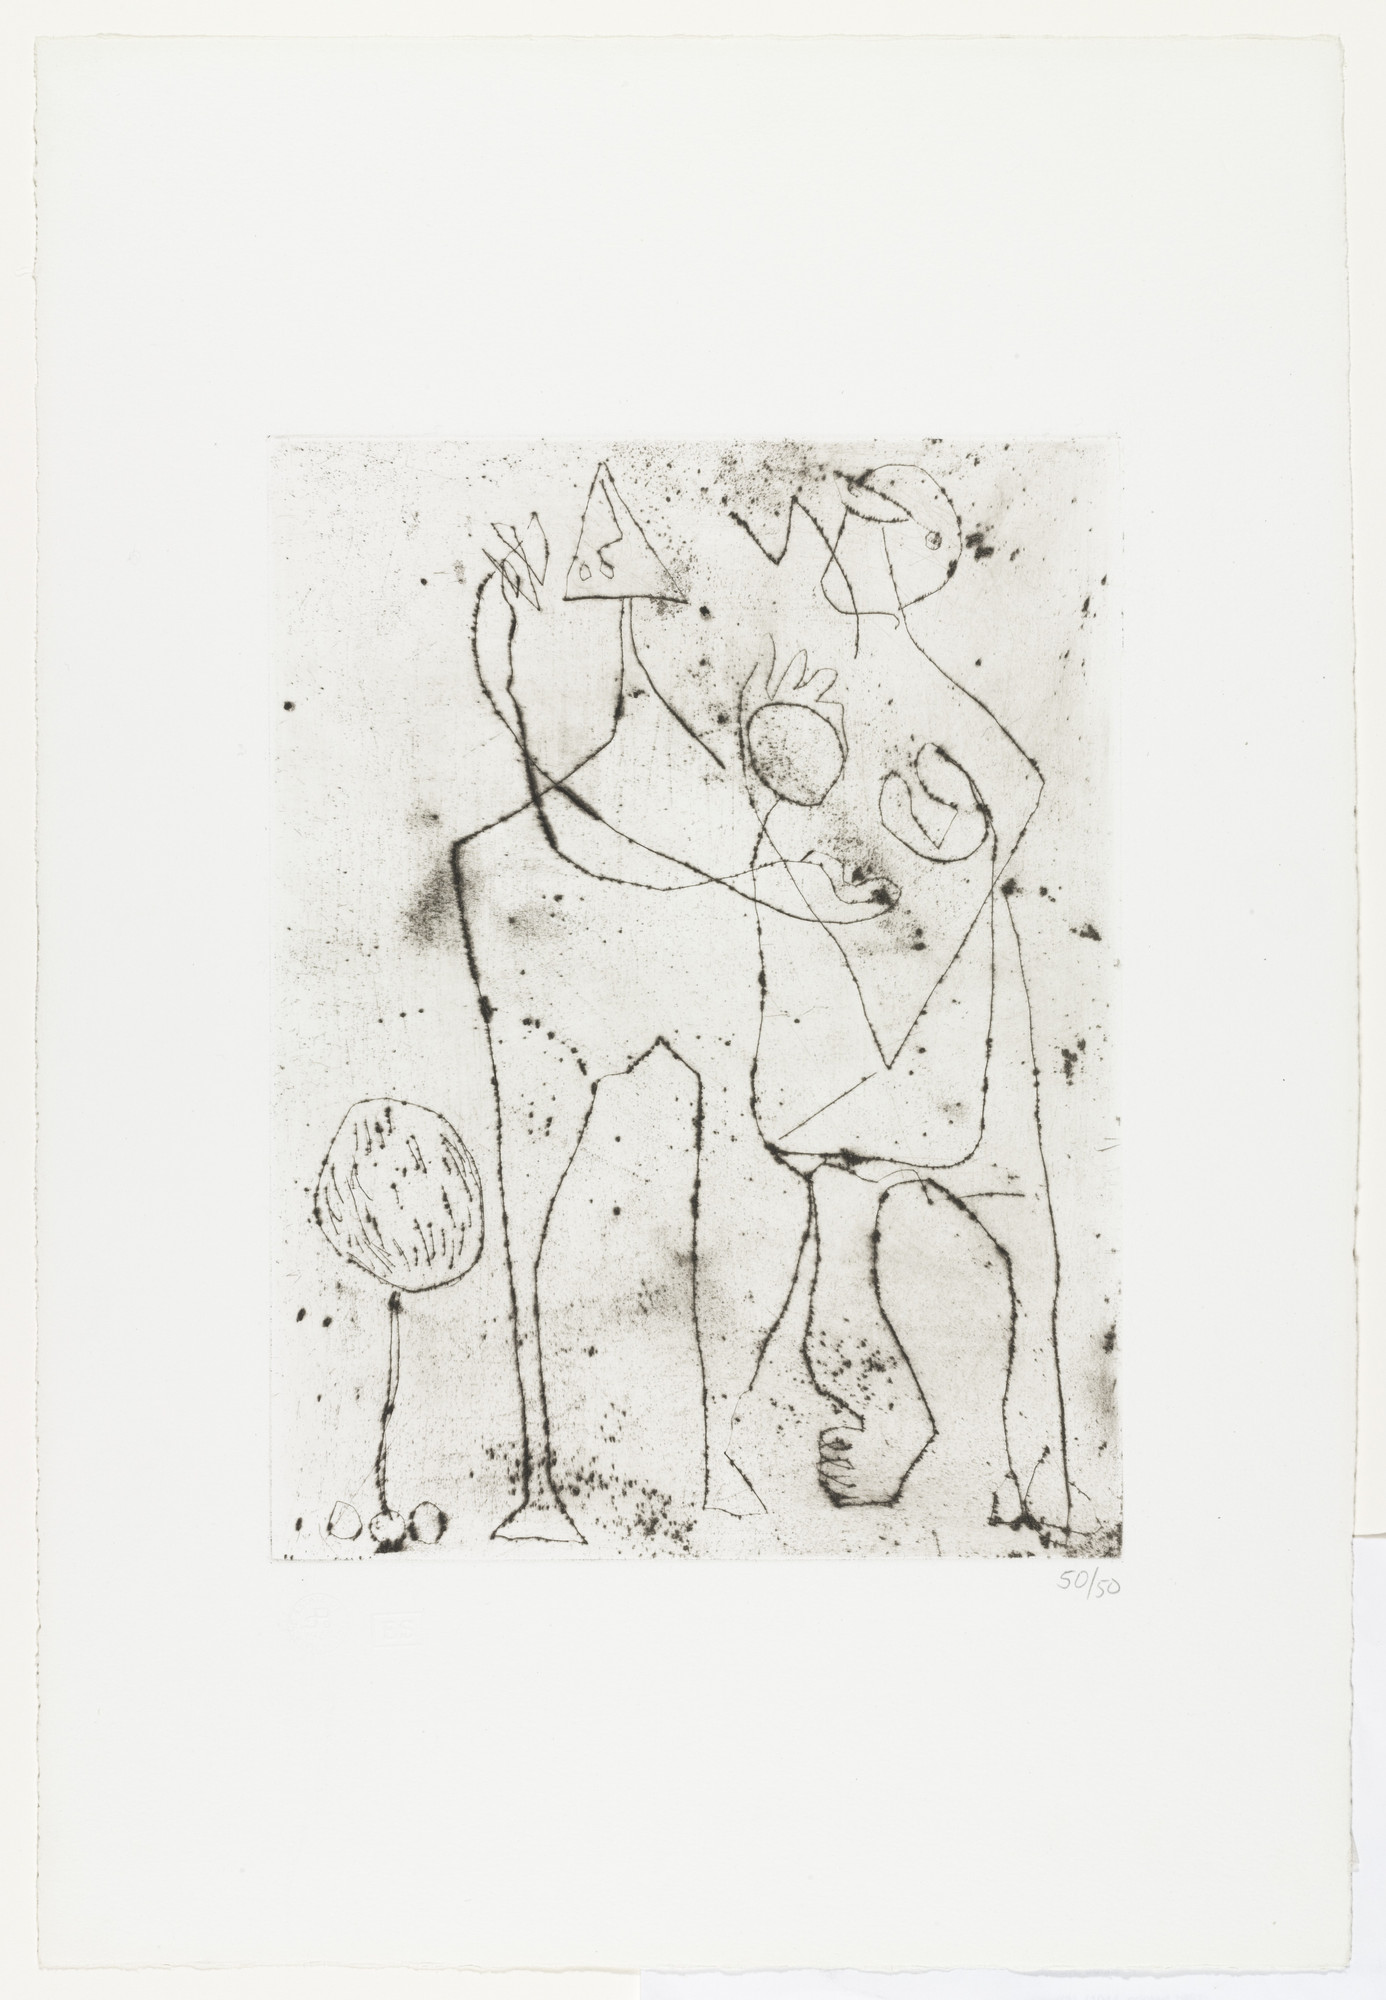 Jackson Pollock. Untitled (3). c. 1944, printed in 1967